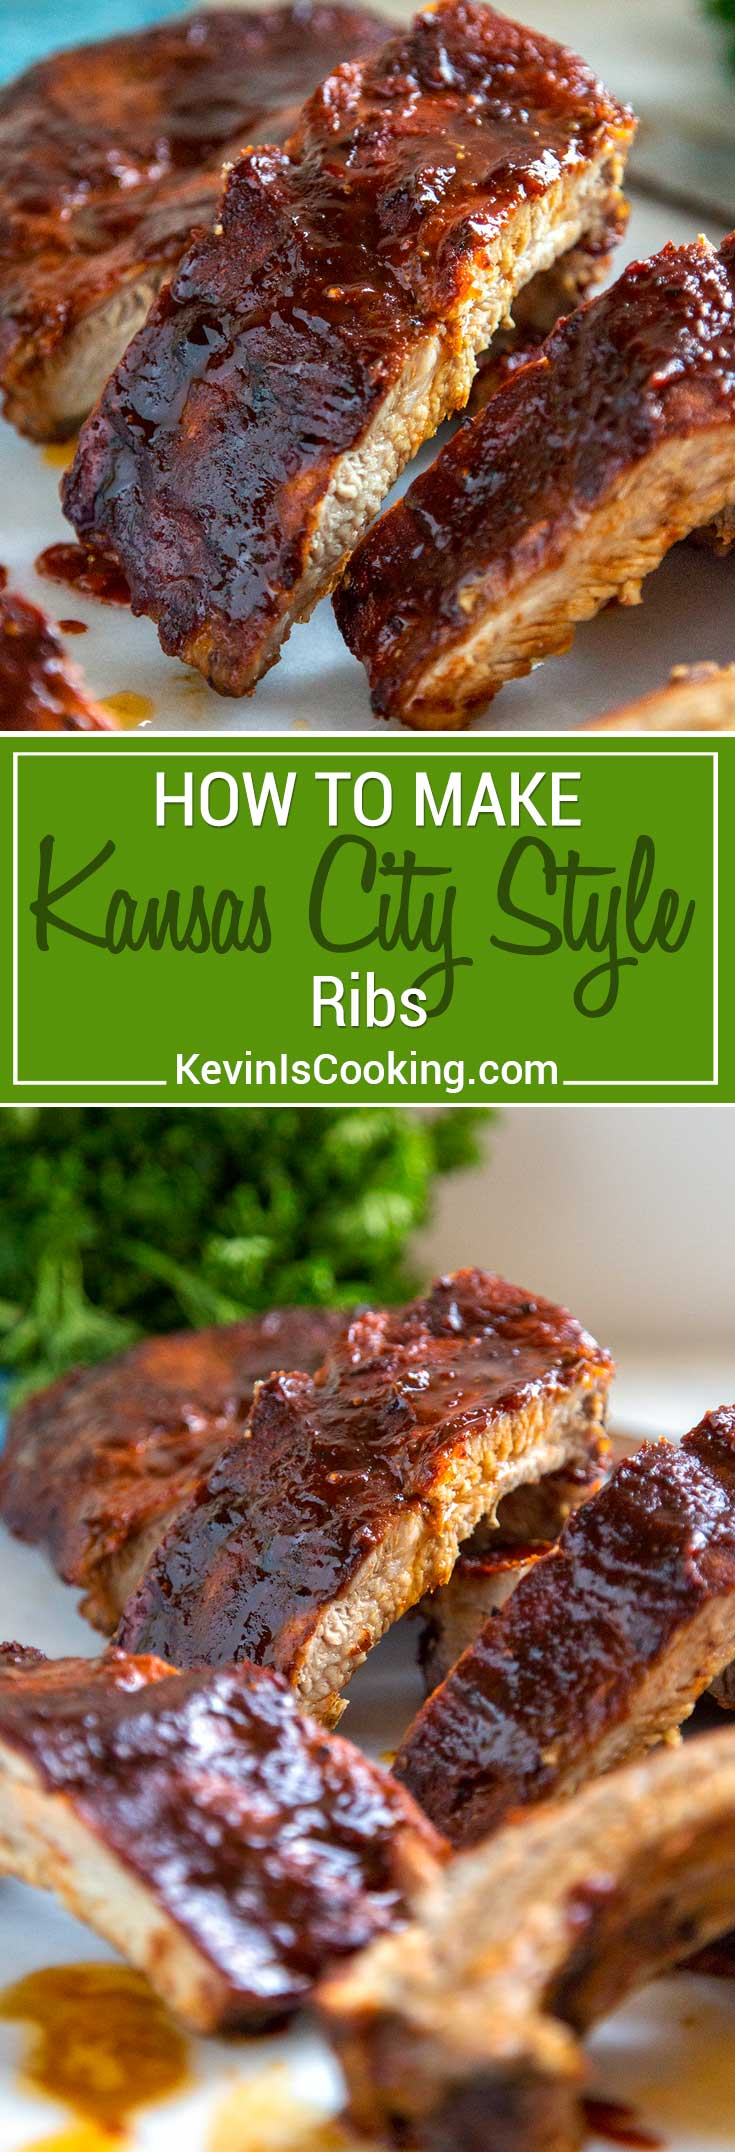 Kansas City Style Ribs are typically characterized by the thick, sticky sauce brushed on in the last 30 minutes of cooking. The dry rub and sauce are on the sweet side using a brown sugar base, but are balanced with chili powder and pepper, producing some truly finger licking good ribs. #ribs #KansasCityStyle #BBQ